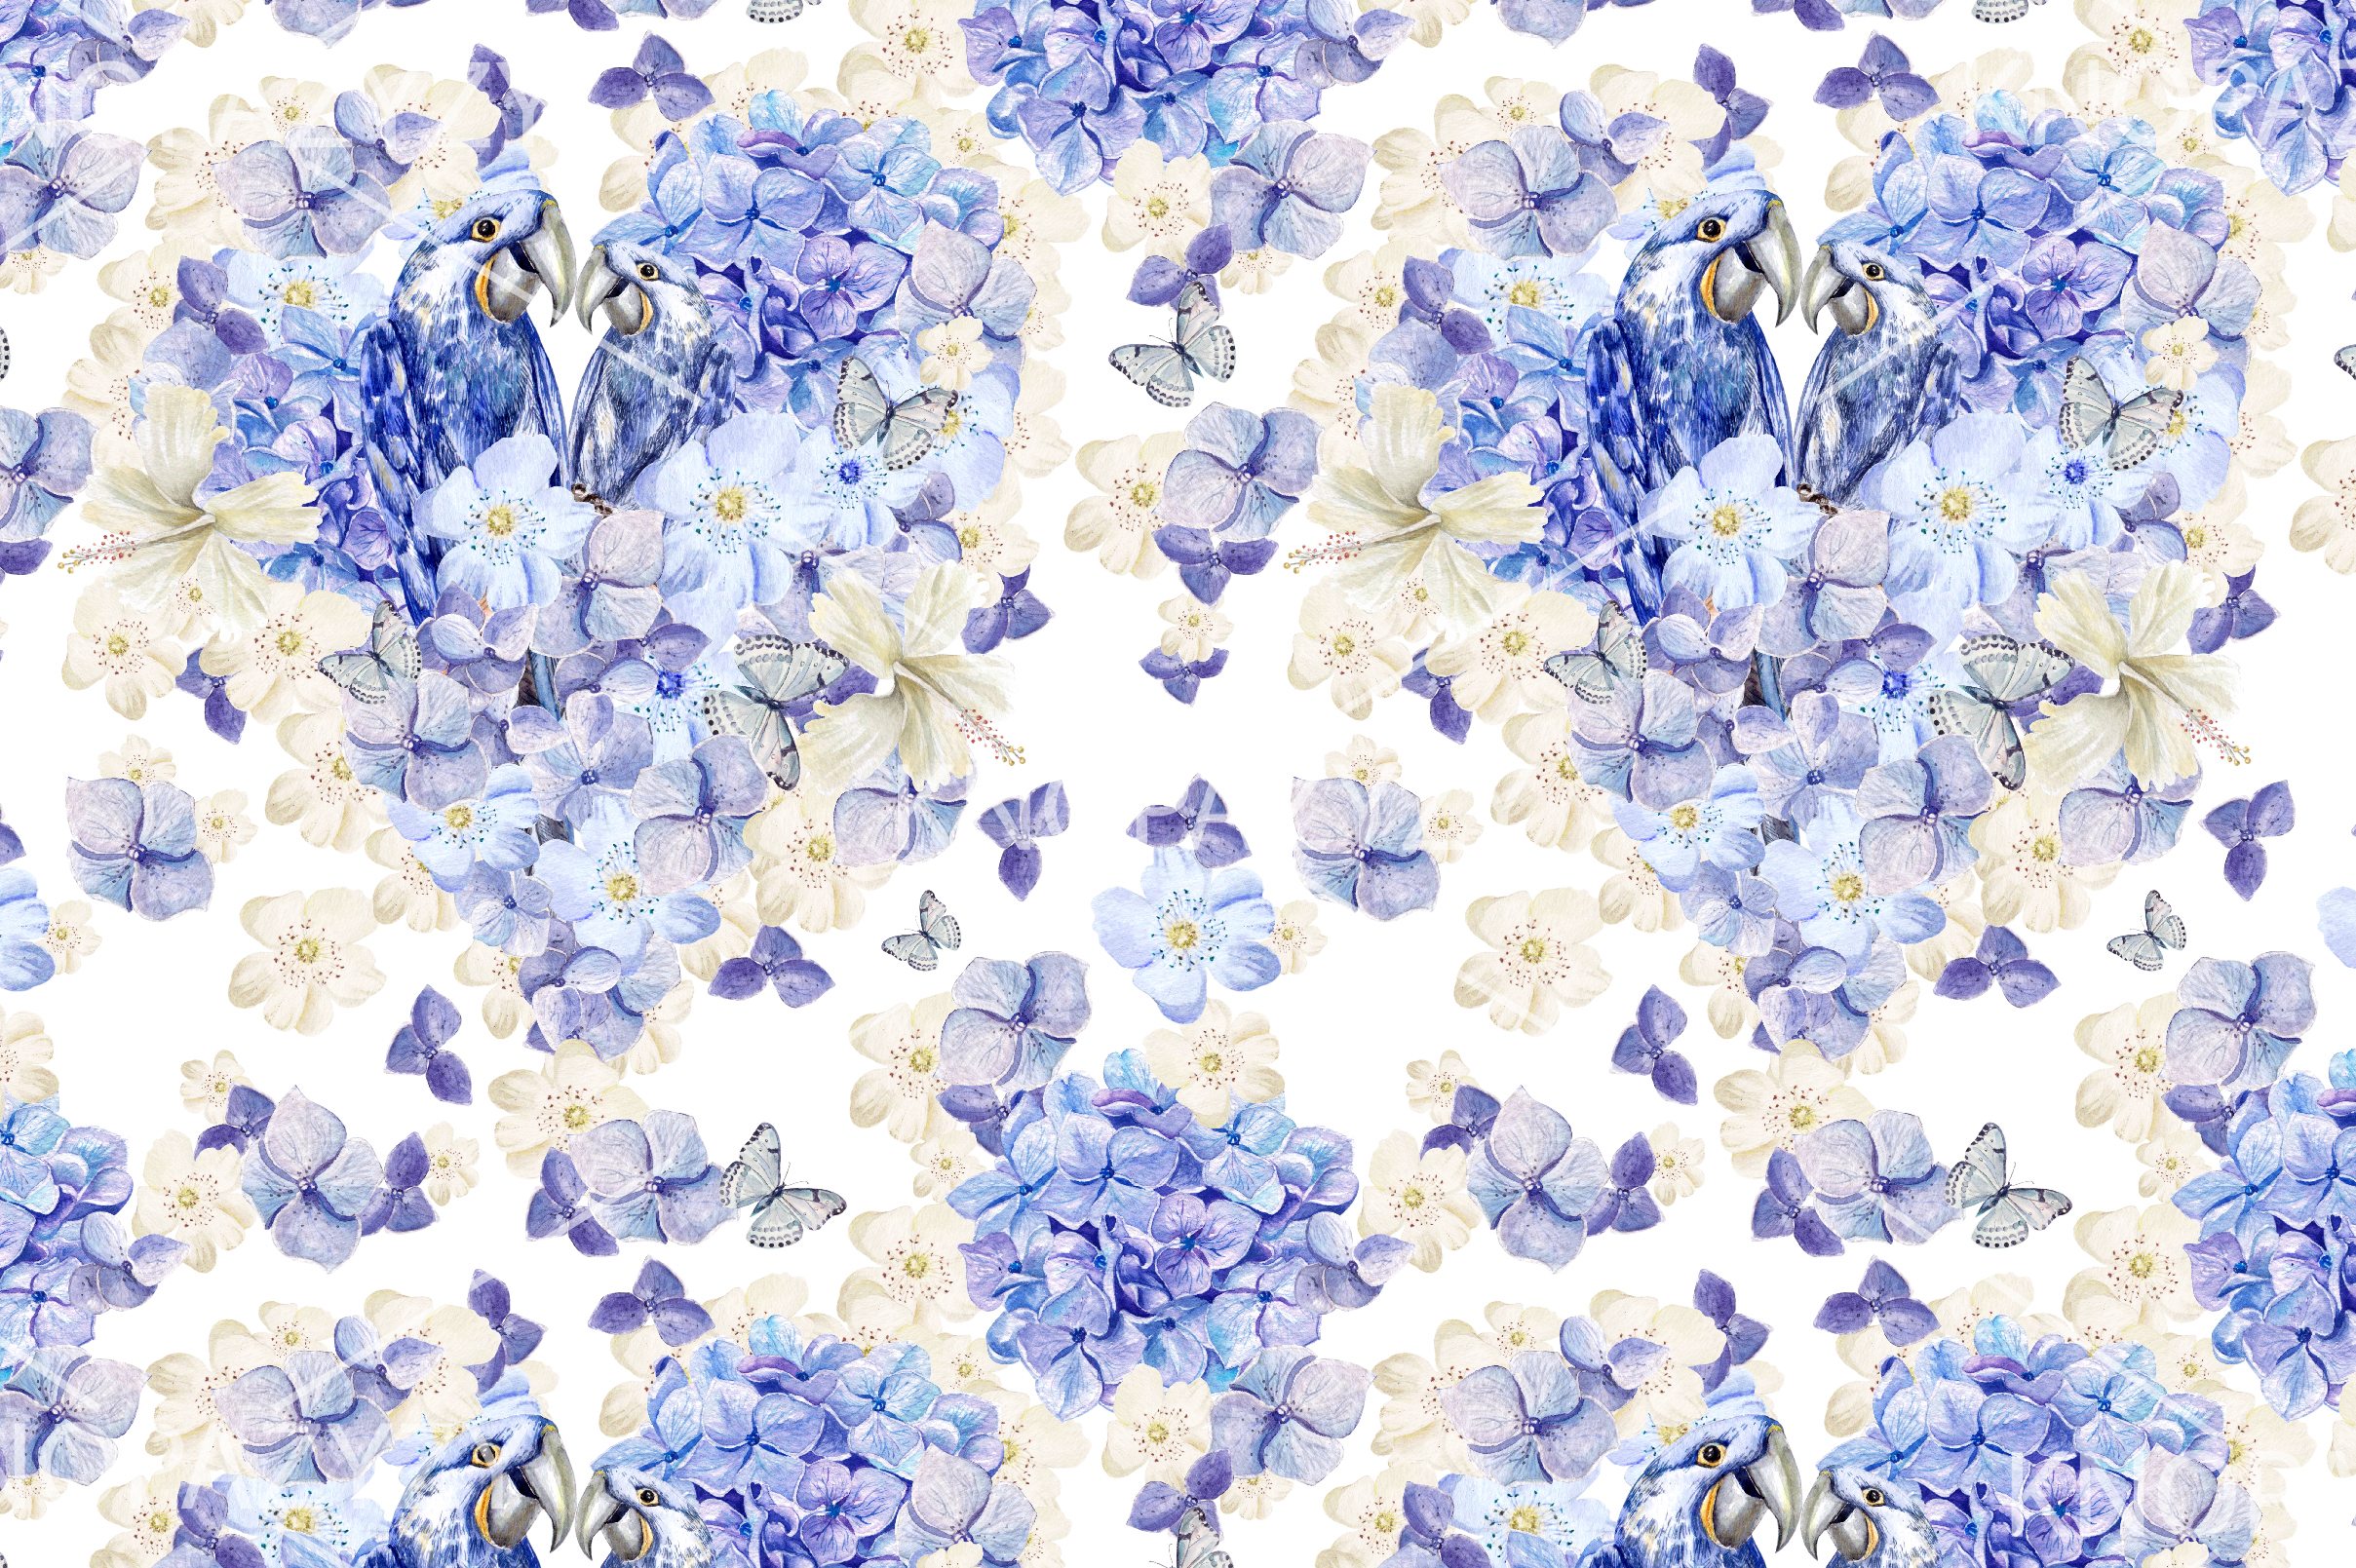 15 Hand Drawn Watercolor PATTERNS example image 4